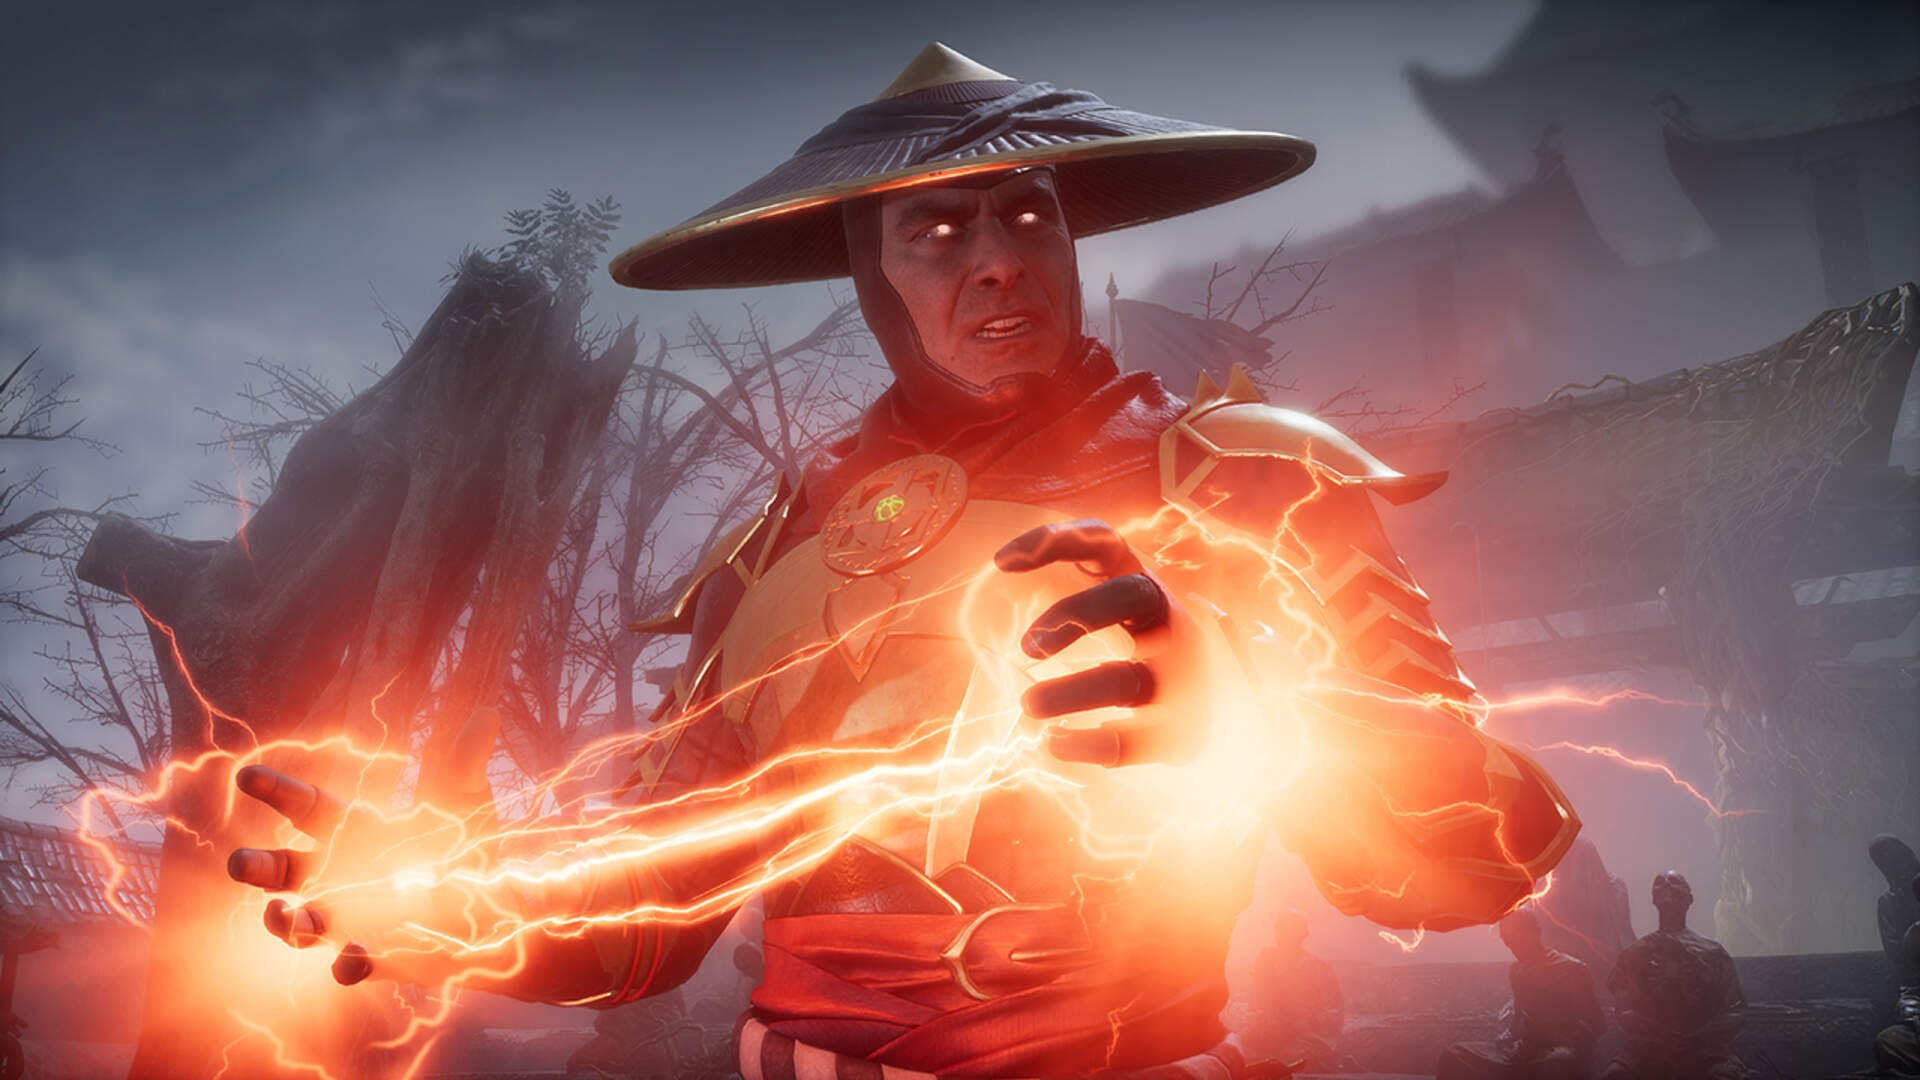 Fans Should Expect More Favorites to Return for Mortal Kombat 11, Ed Boon Says